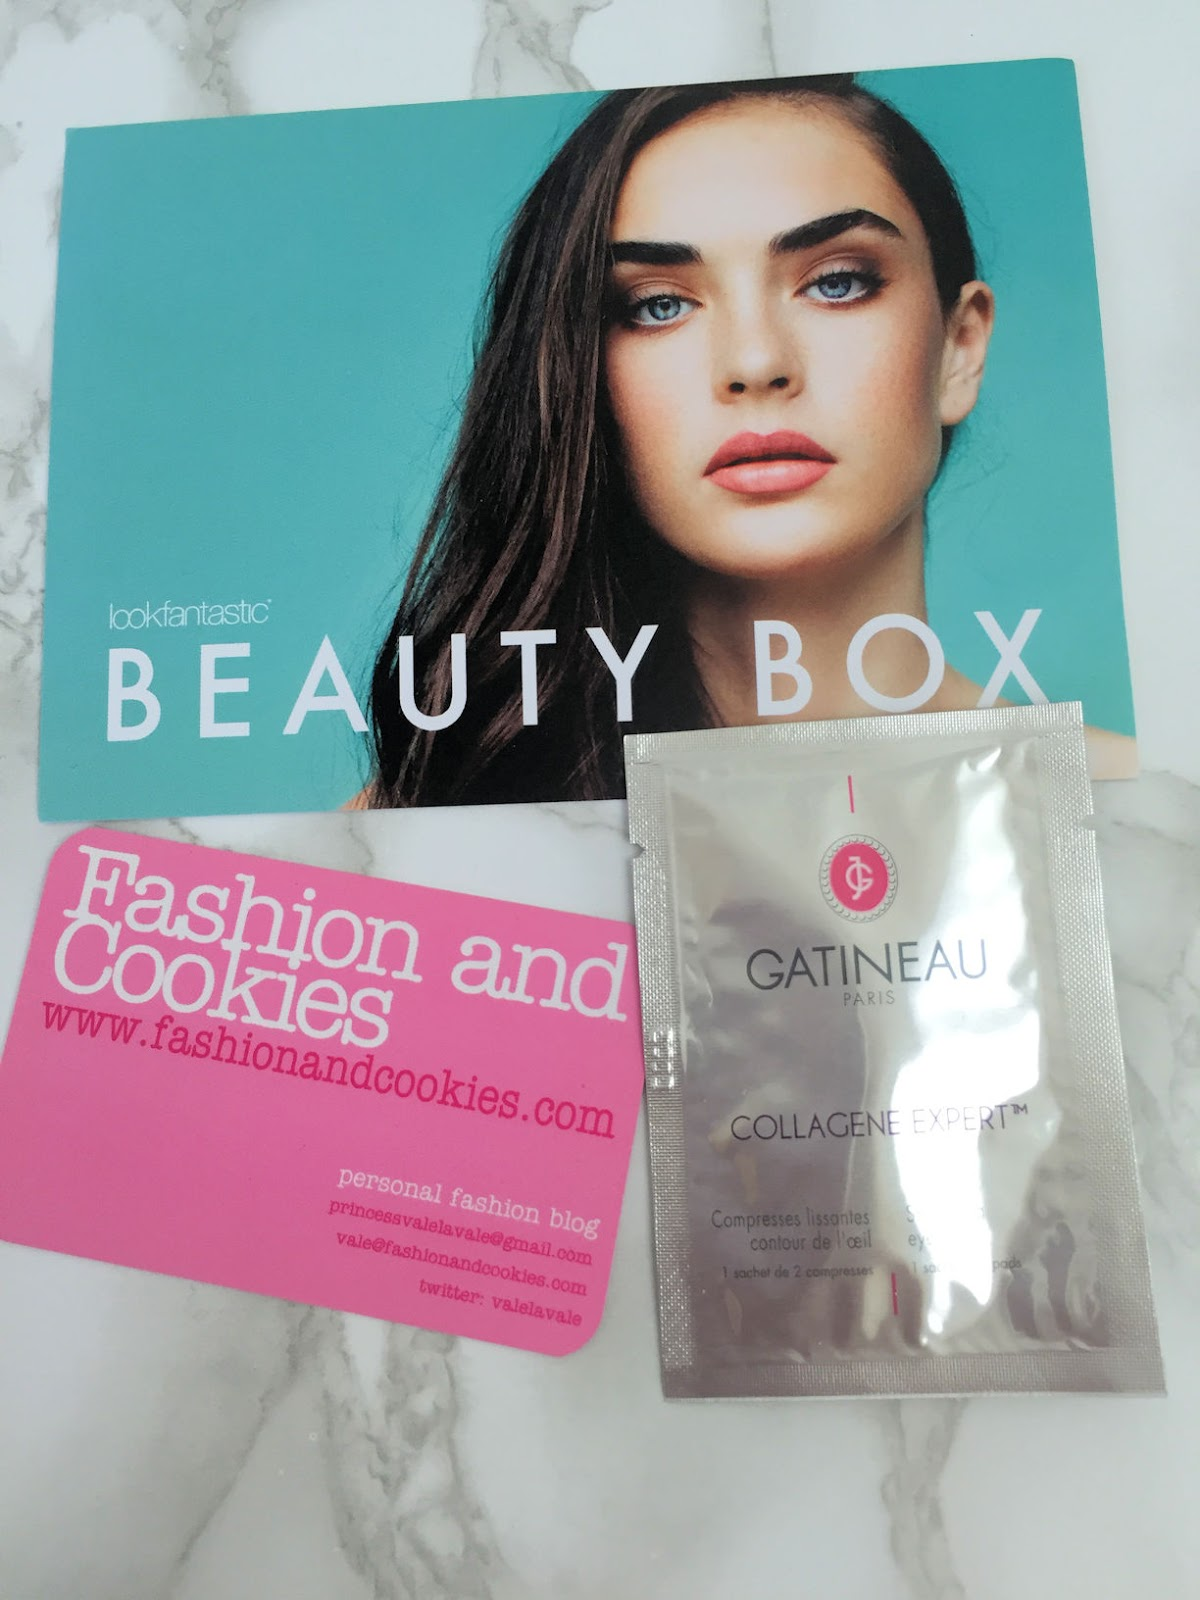 Lookfantastic Beauty Box di Settembre 2016 recensione su Fashion and Cookies beauty blog, beauty blogger